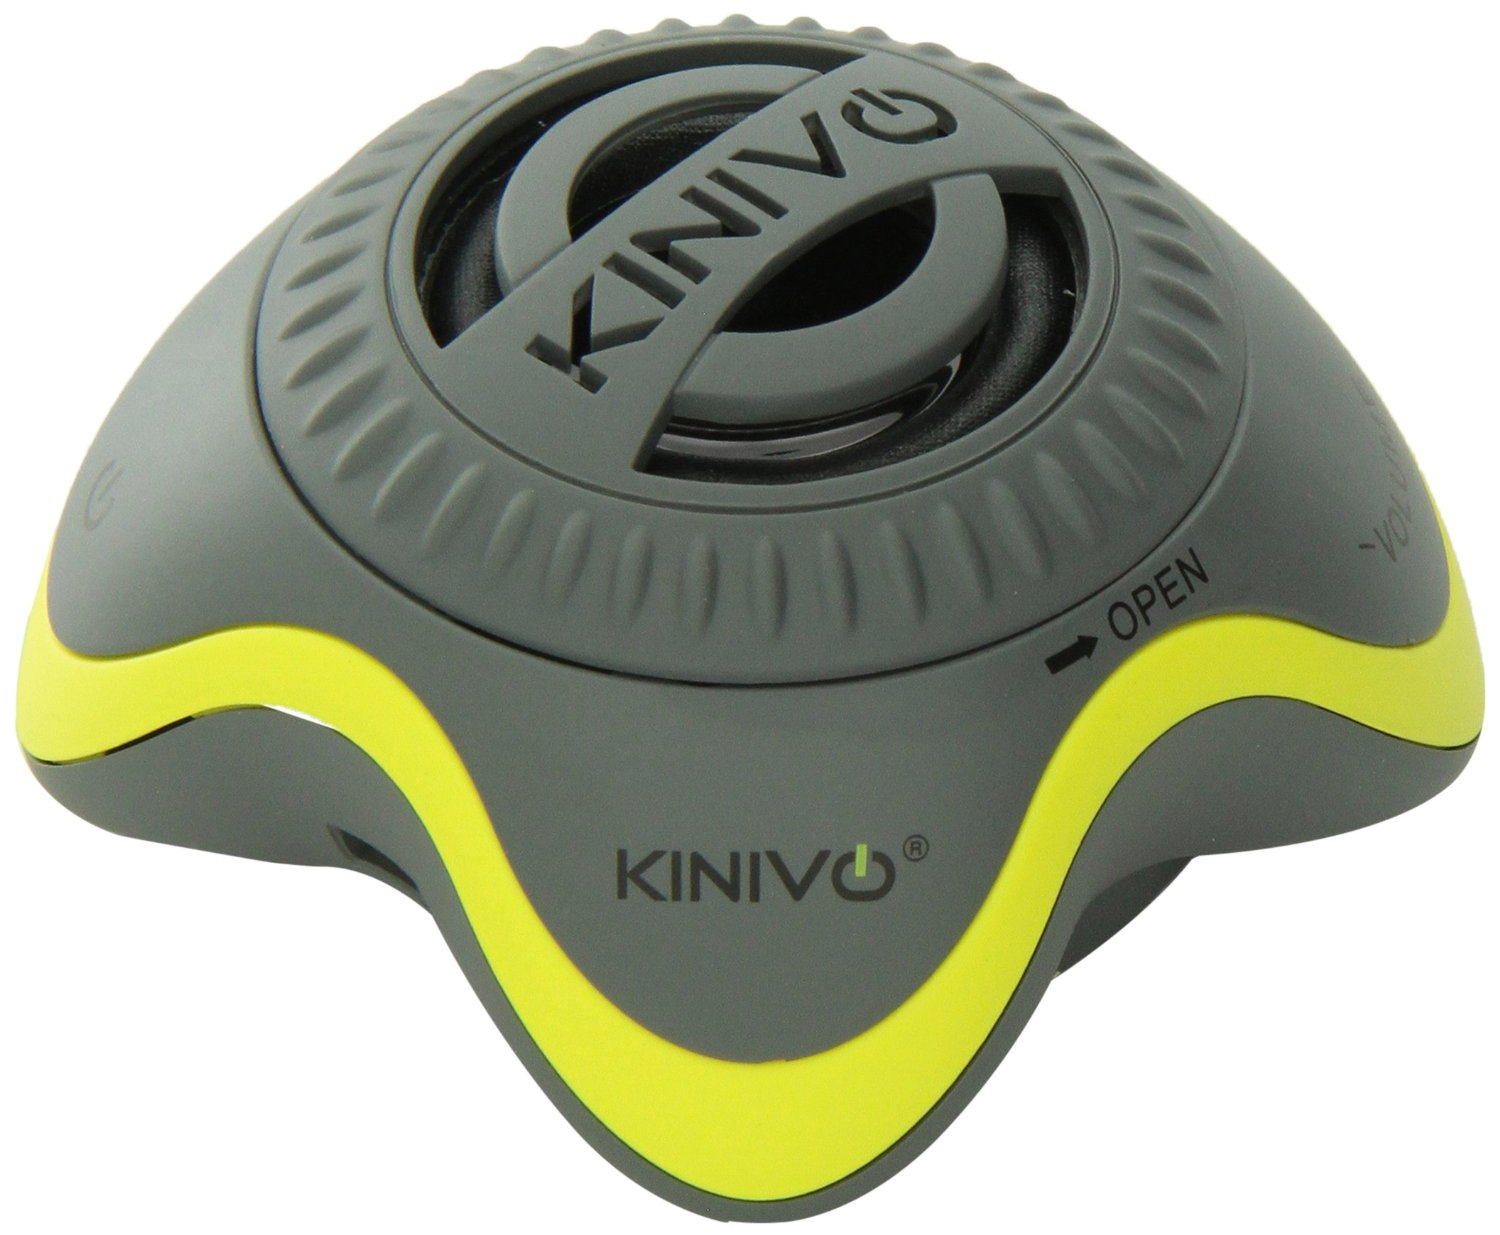 Kinivo Zx100 Mini Portable Speaker Review